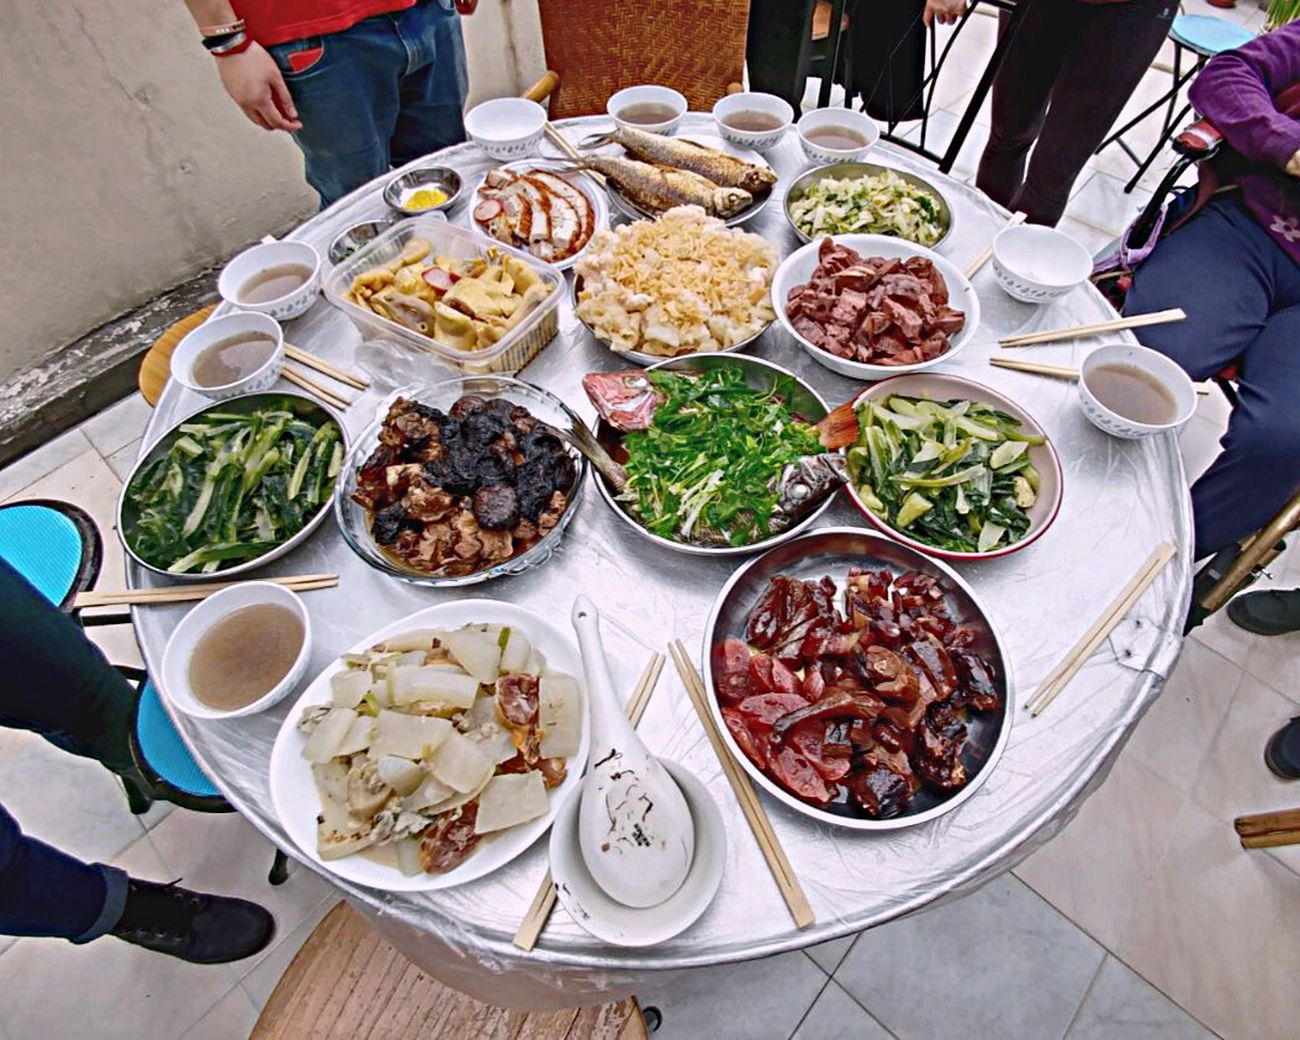 Cny CNY2017 Hong Kong Food Chinese New Year Chinese Food Chinese Culture Saiwan Street Food City Chinese Food Outdoors Adults Only Freshness Adult People Ready-to-eat Day Soup Tradition Family Relatives Cousins  Grandma